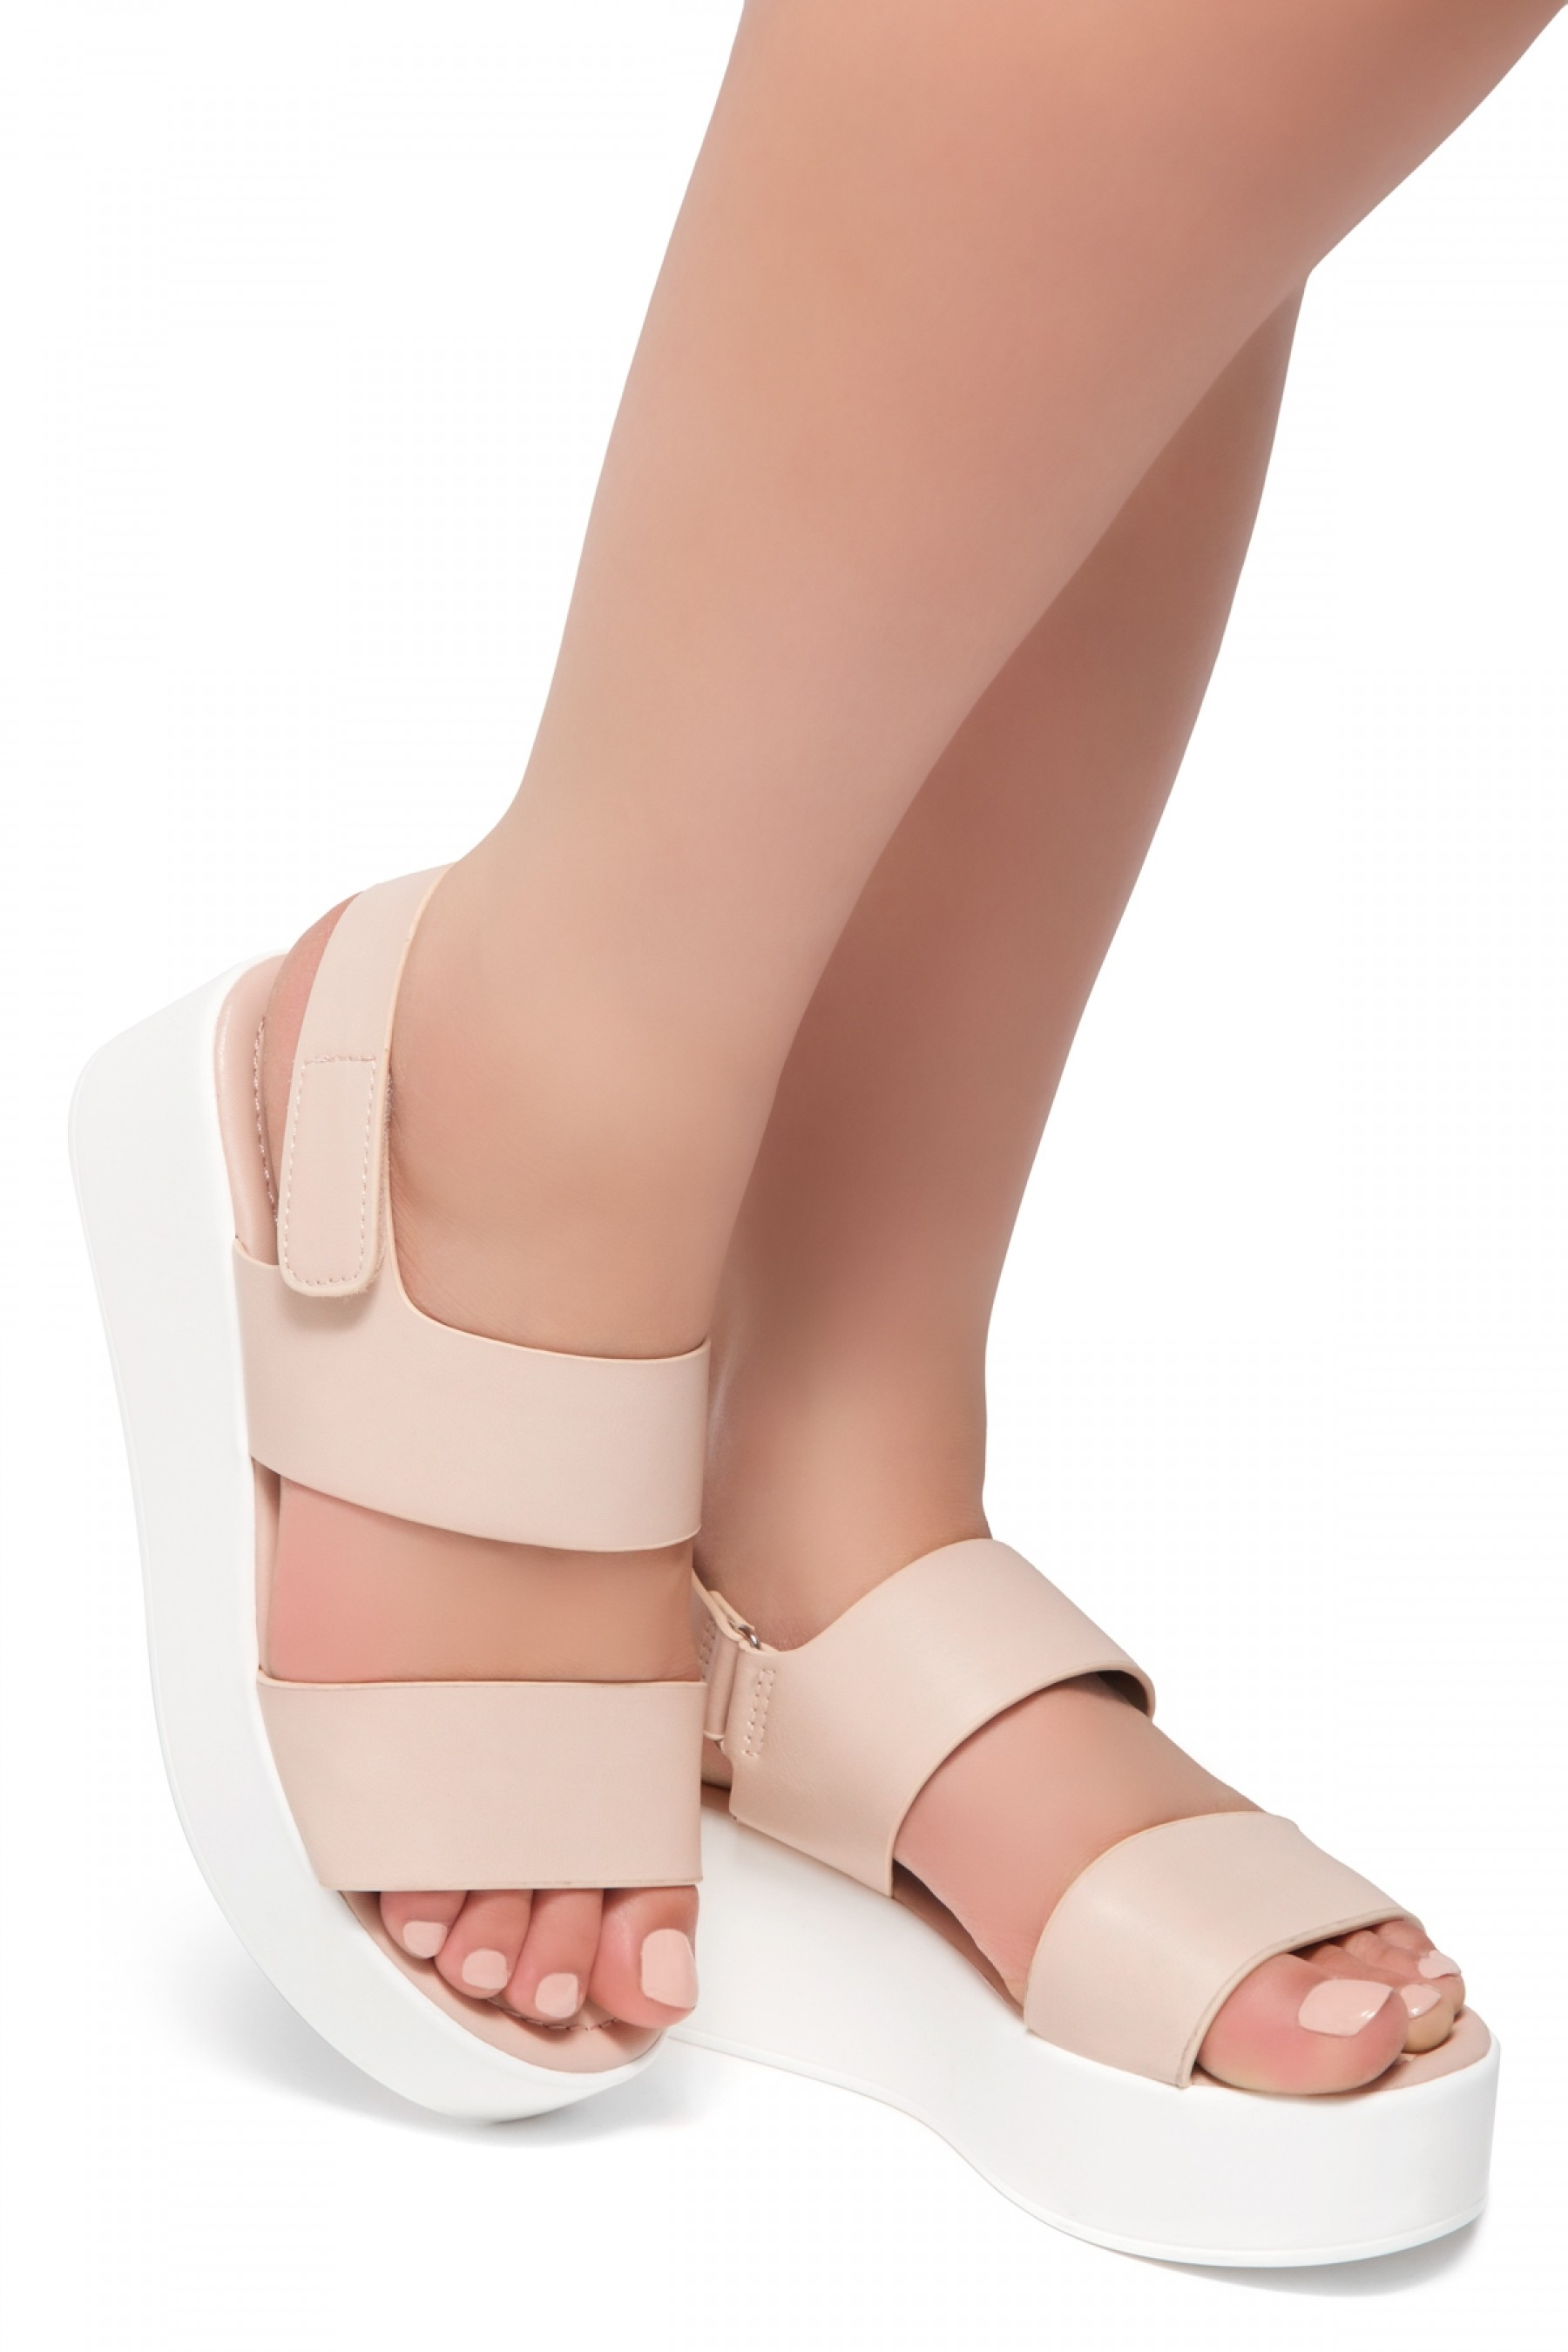 620bcb948d88 HerStyle Belma- Open Toe Velcro Strap Double-Banded Vamp with ...